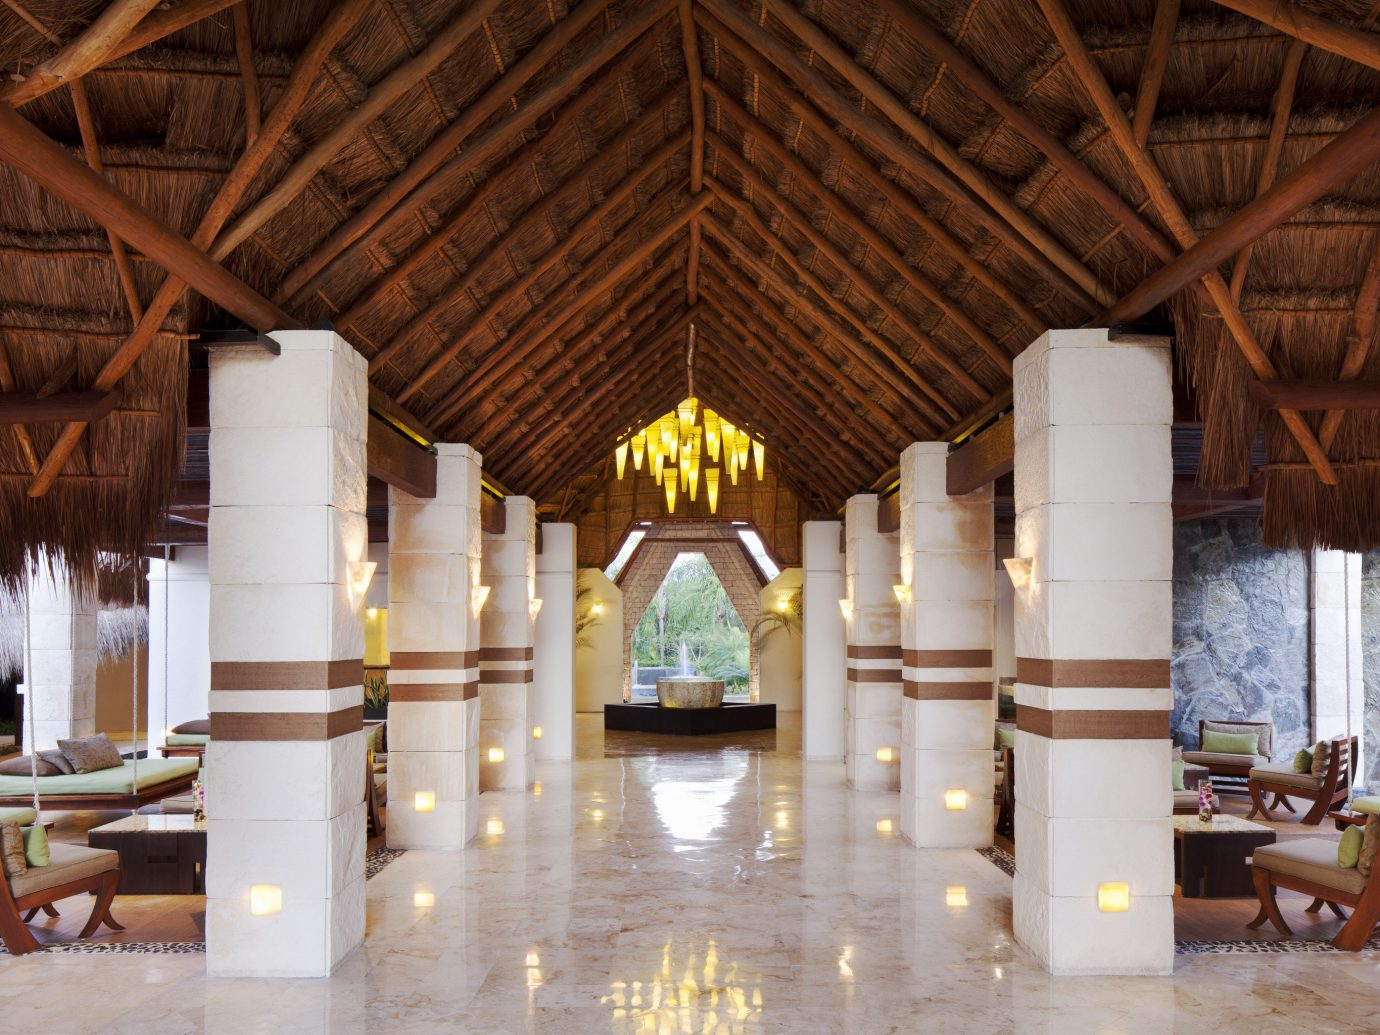 All-Inclusive Resorts Family Travel Hotels indoor building ceiling place of worship chapel interior design aisle several